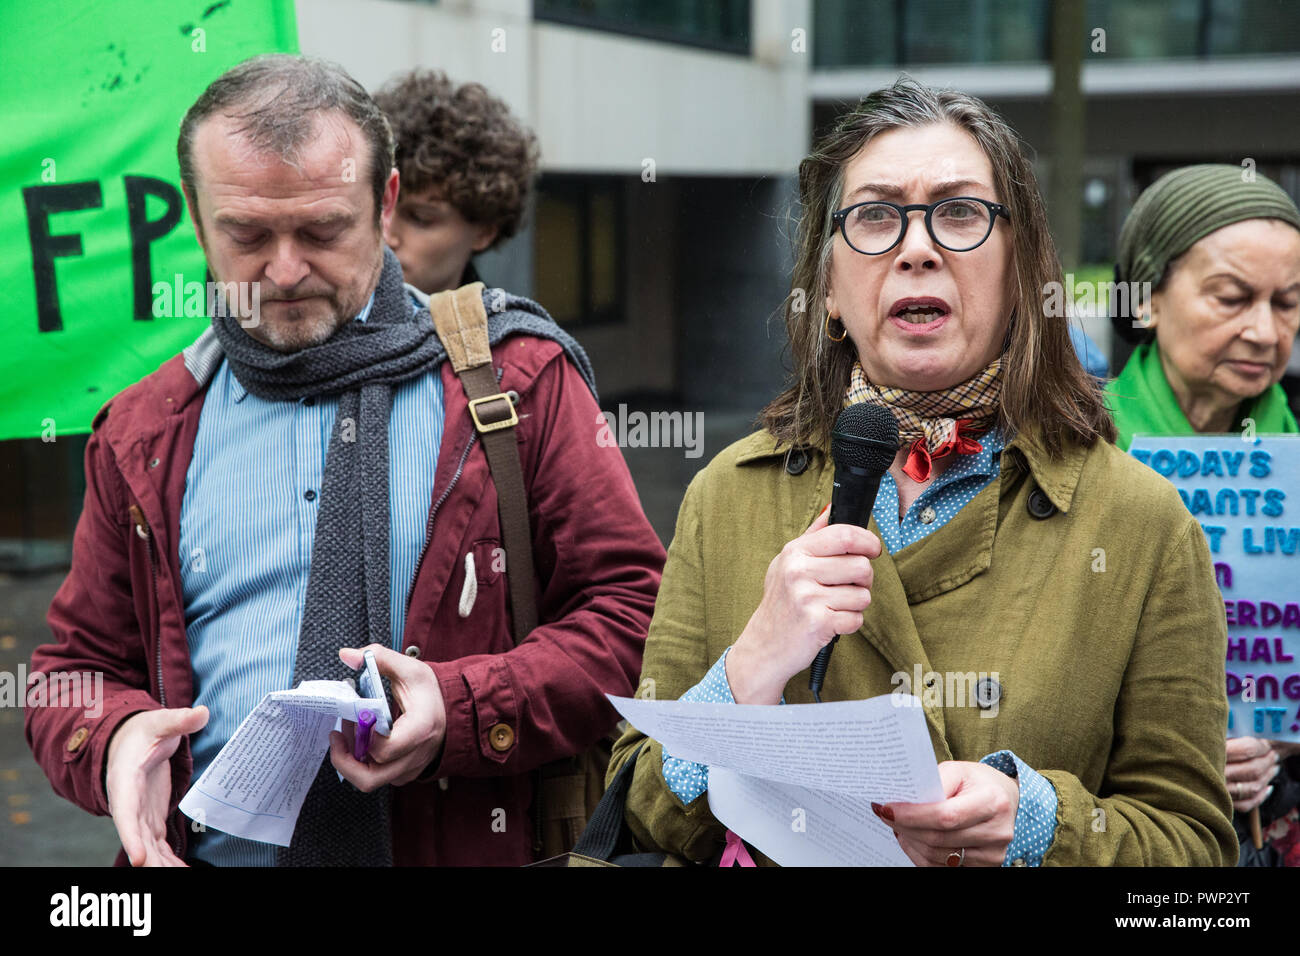 London, UK. 17th October, 2018. Leaseholder Beverley Reynolds-Logue from Manchester addresses tower block residents and supporters of grassroots campaign group Fuel Poverty Action at a protest outside the Ministry of Housing, Communities and Local Government to demand urgent action and funding to protect tower block residents both from fire and from cold. A letter signed by 140 signatories including MPs, councillors, trade union bodies and campaign groups focused on housing, poverty, discrimination, health, energy and climate was also presented. Credit: Mark Kerrison/Alamy Live News - Stock Image